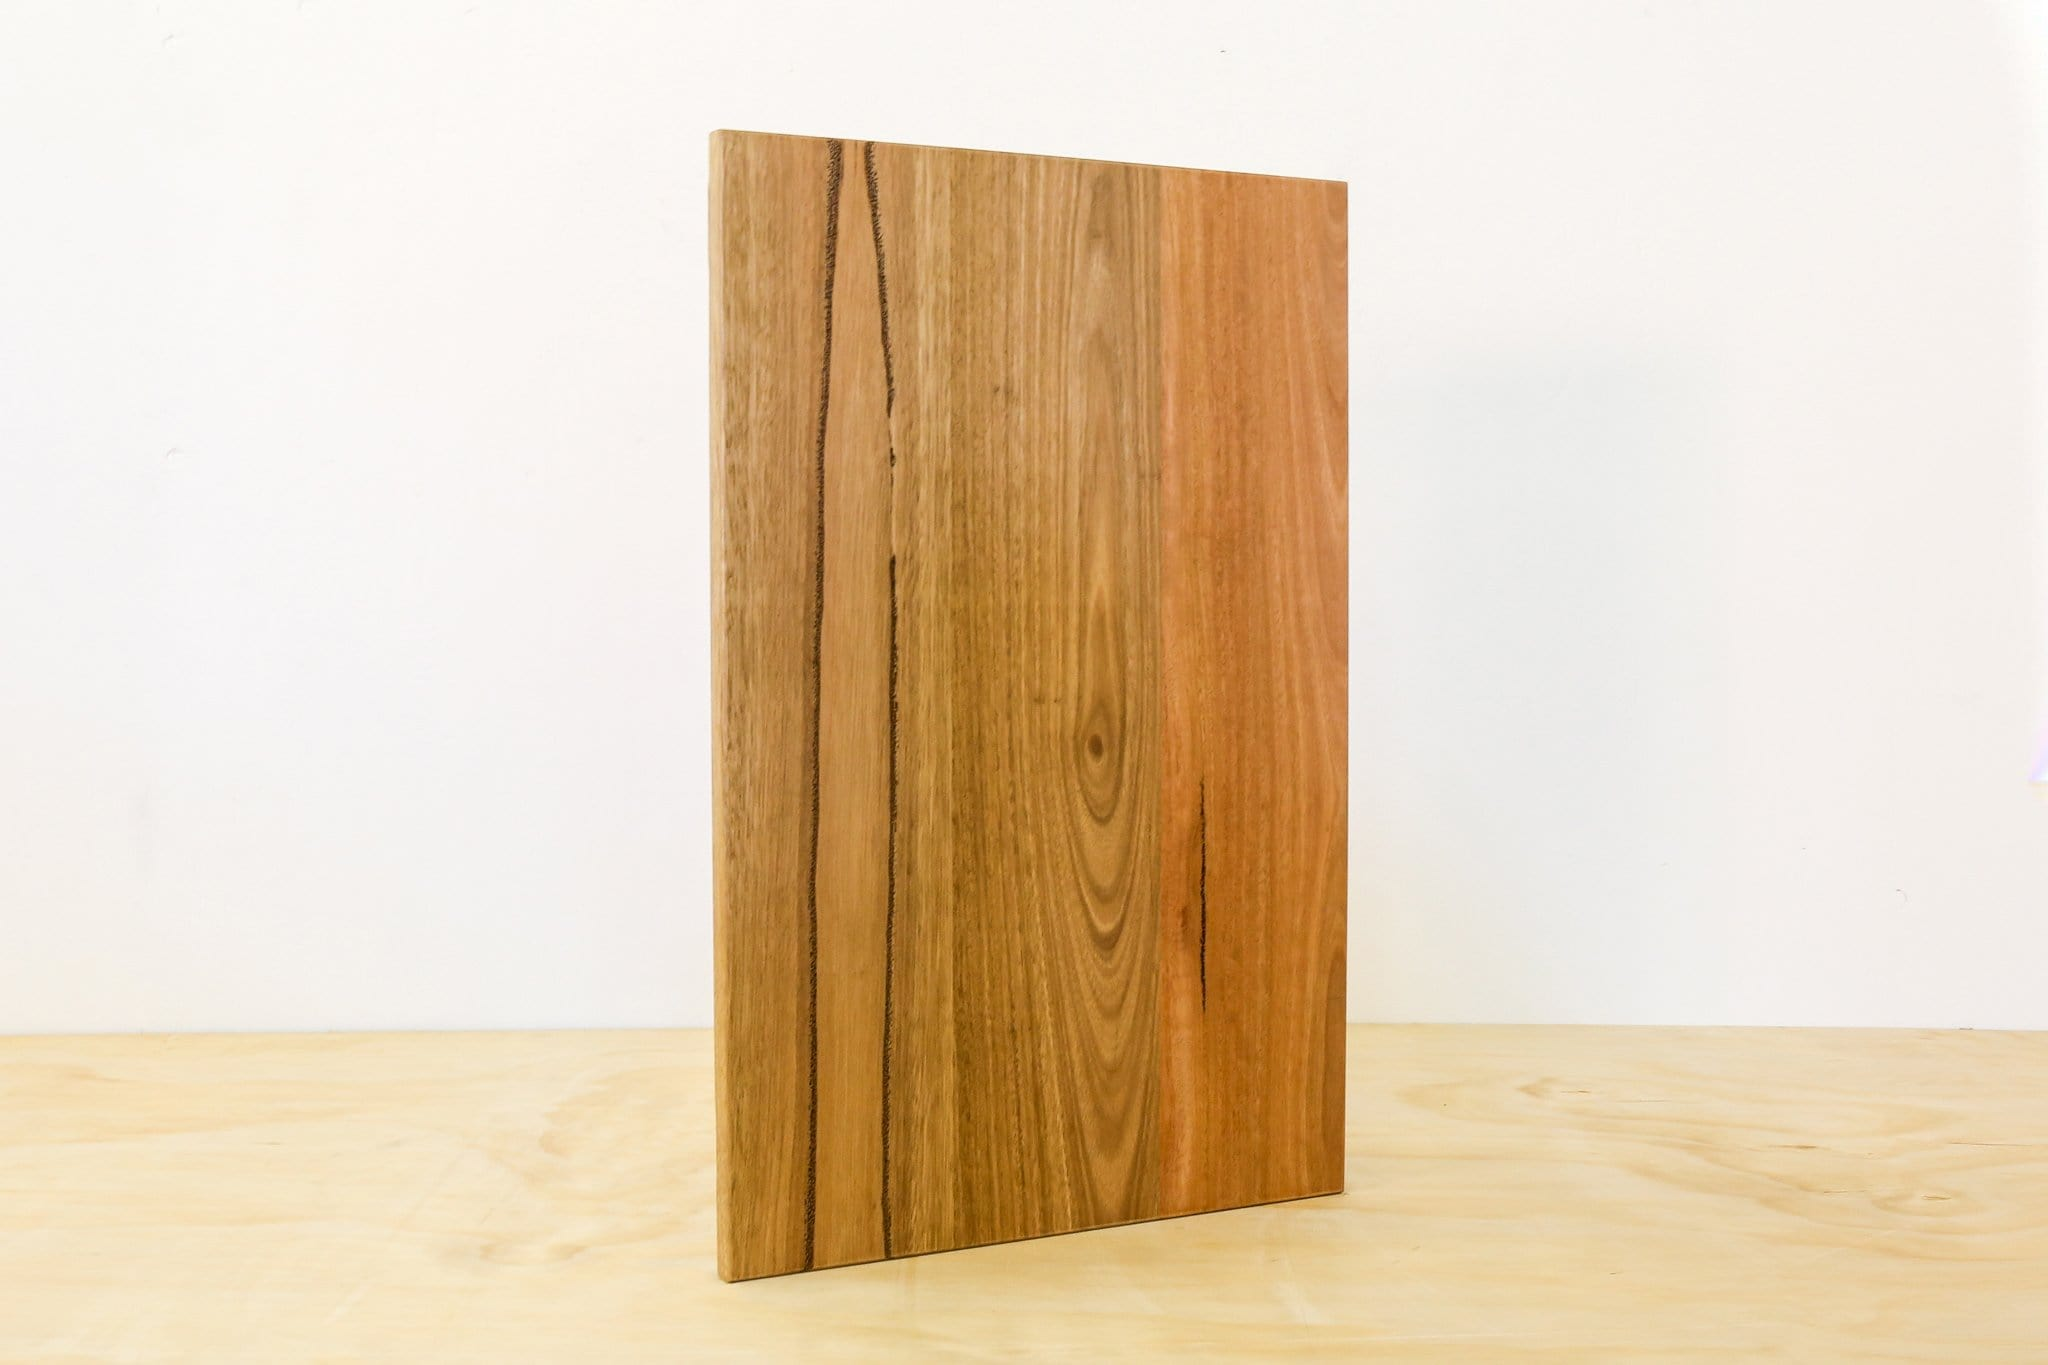 COVER PANEL - Spotted Gum